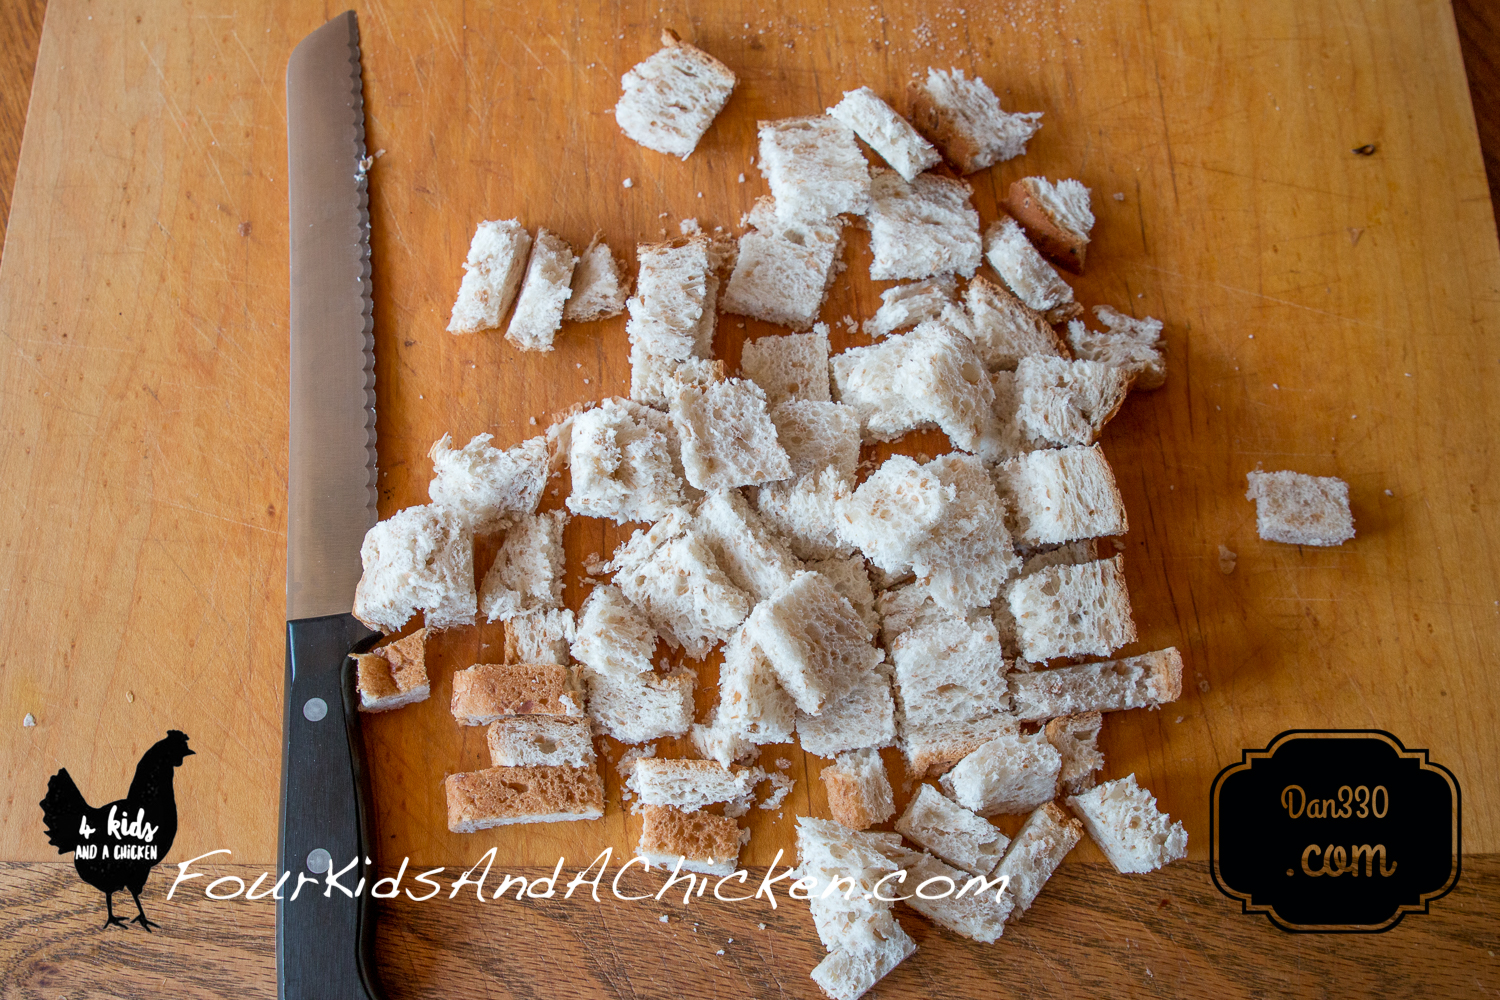 Dicing bread for homemade croutons